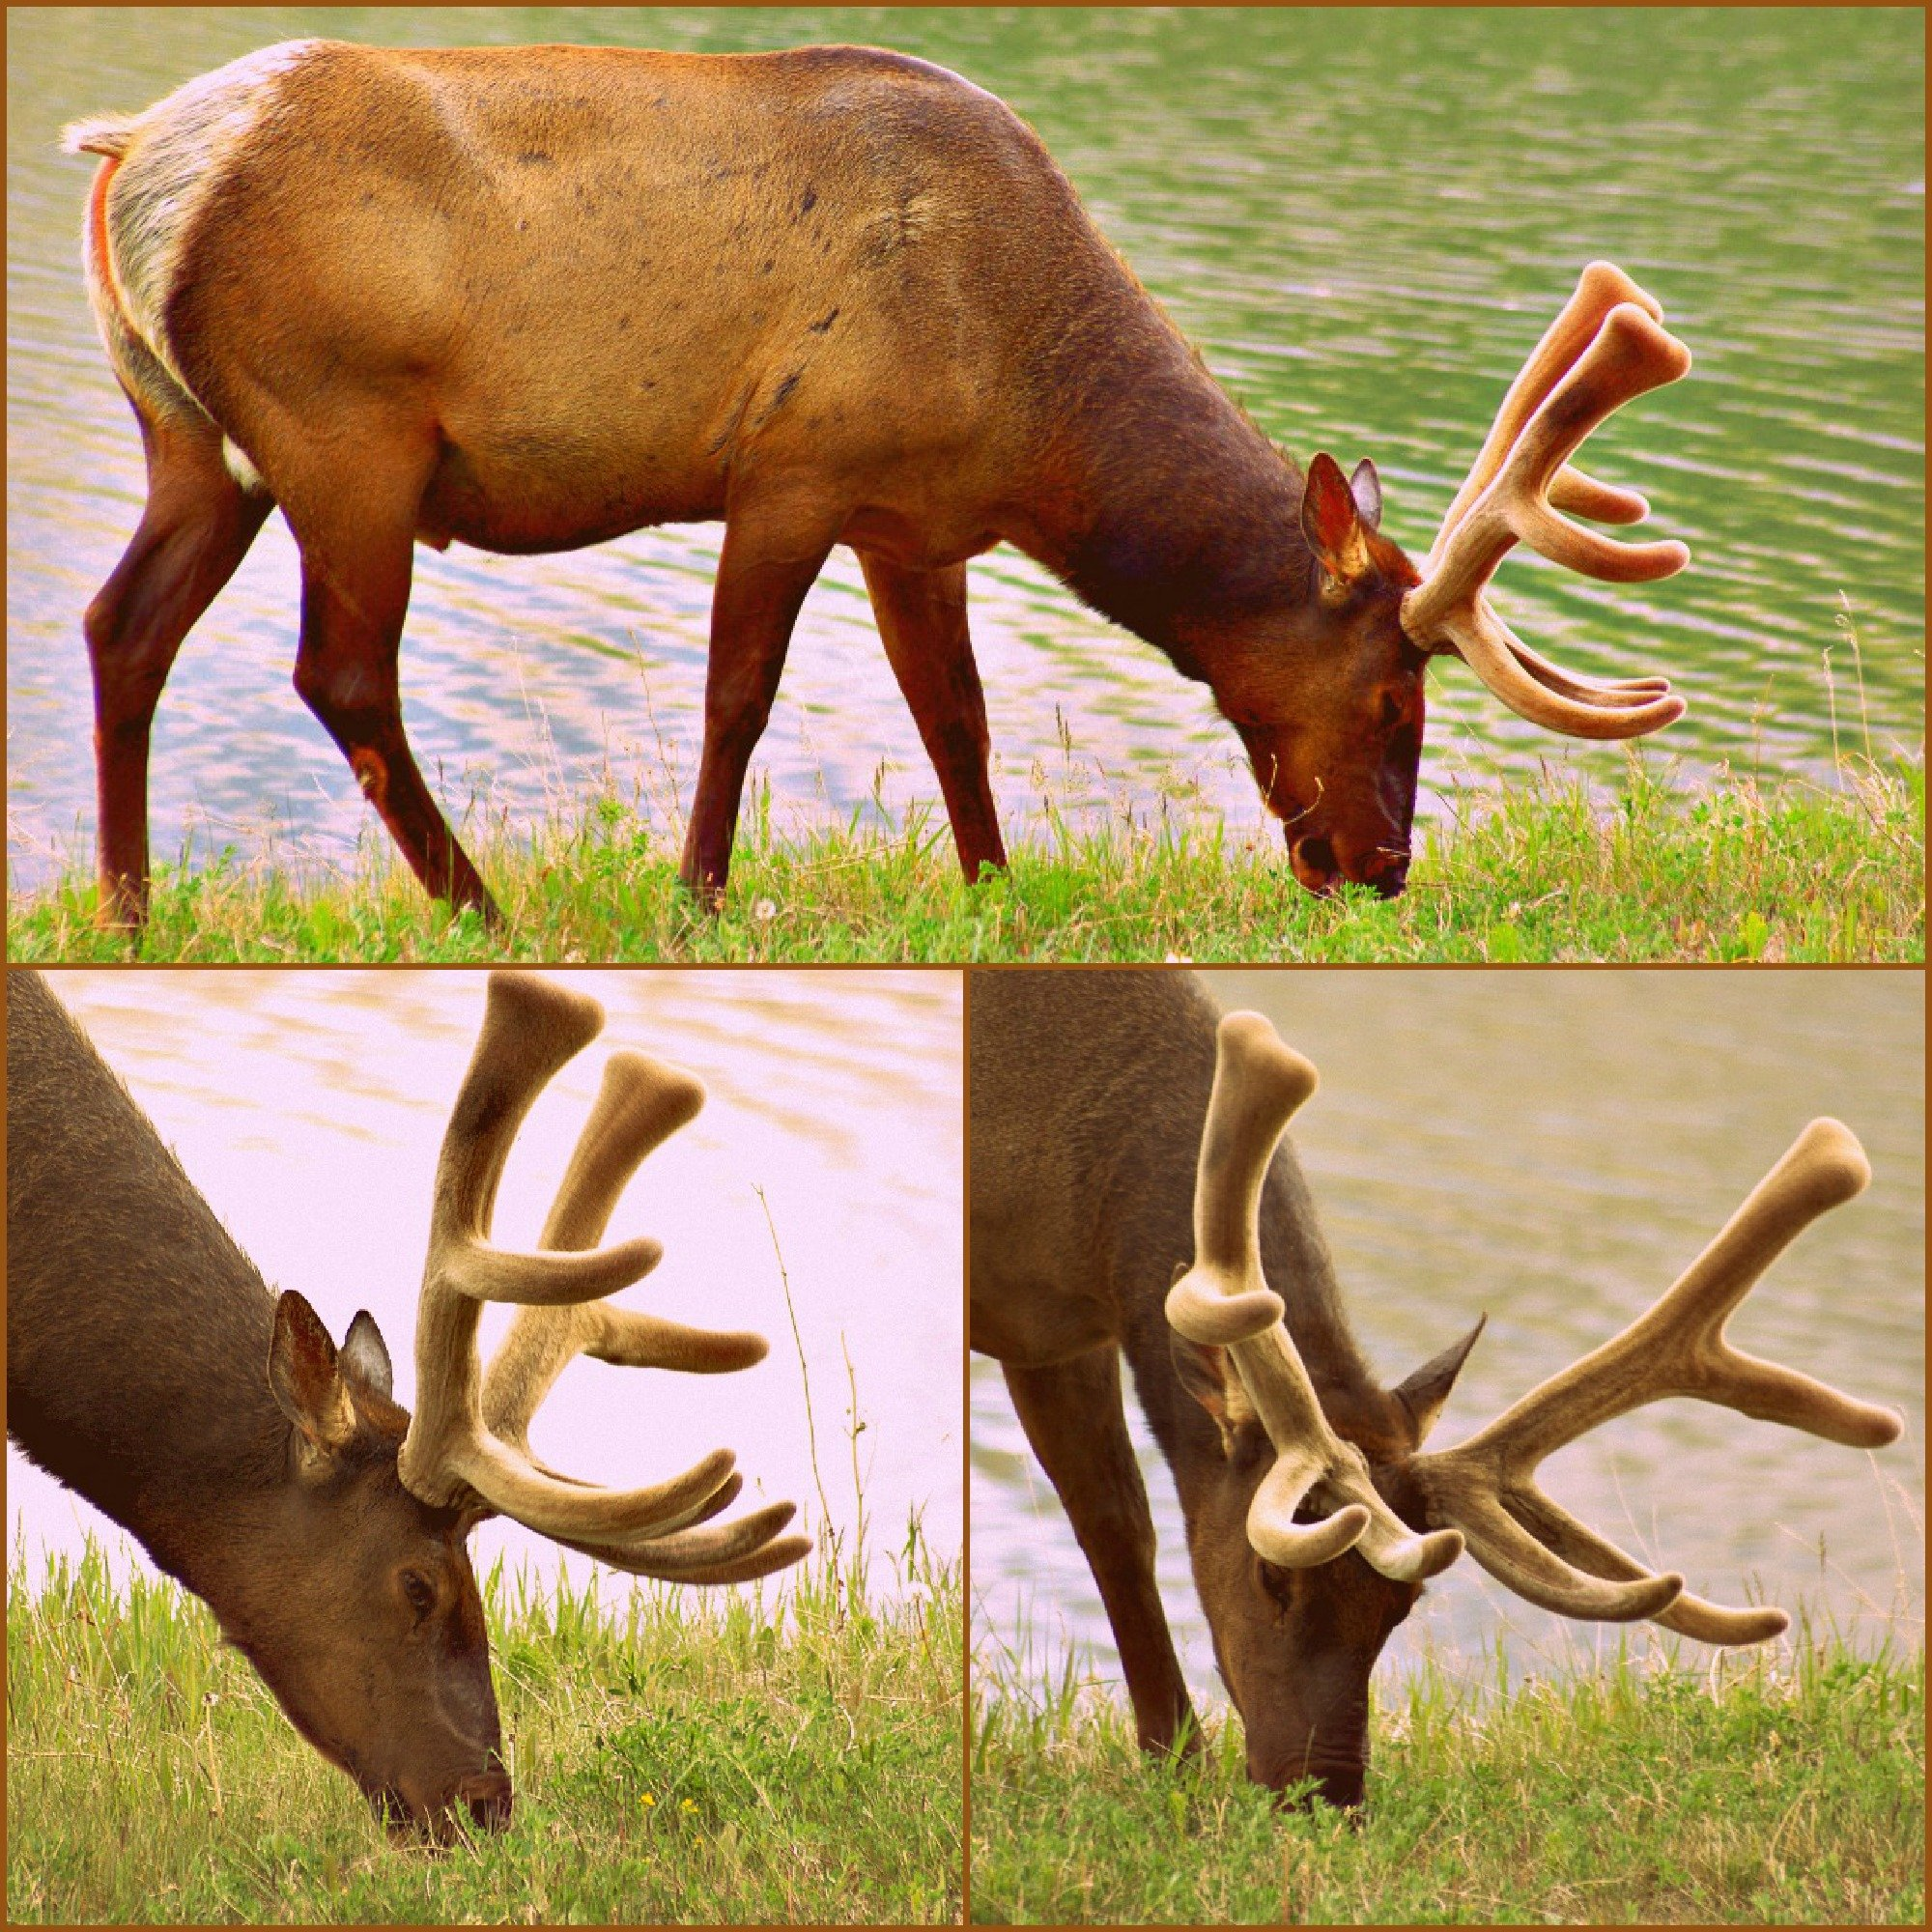 We loved seeing the elk with antlers